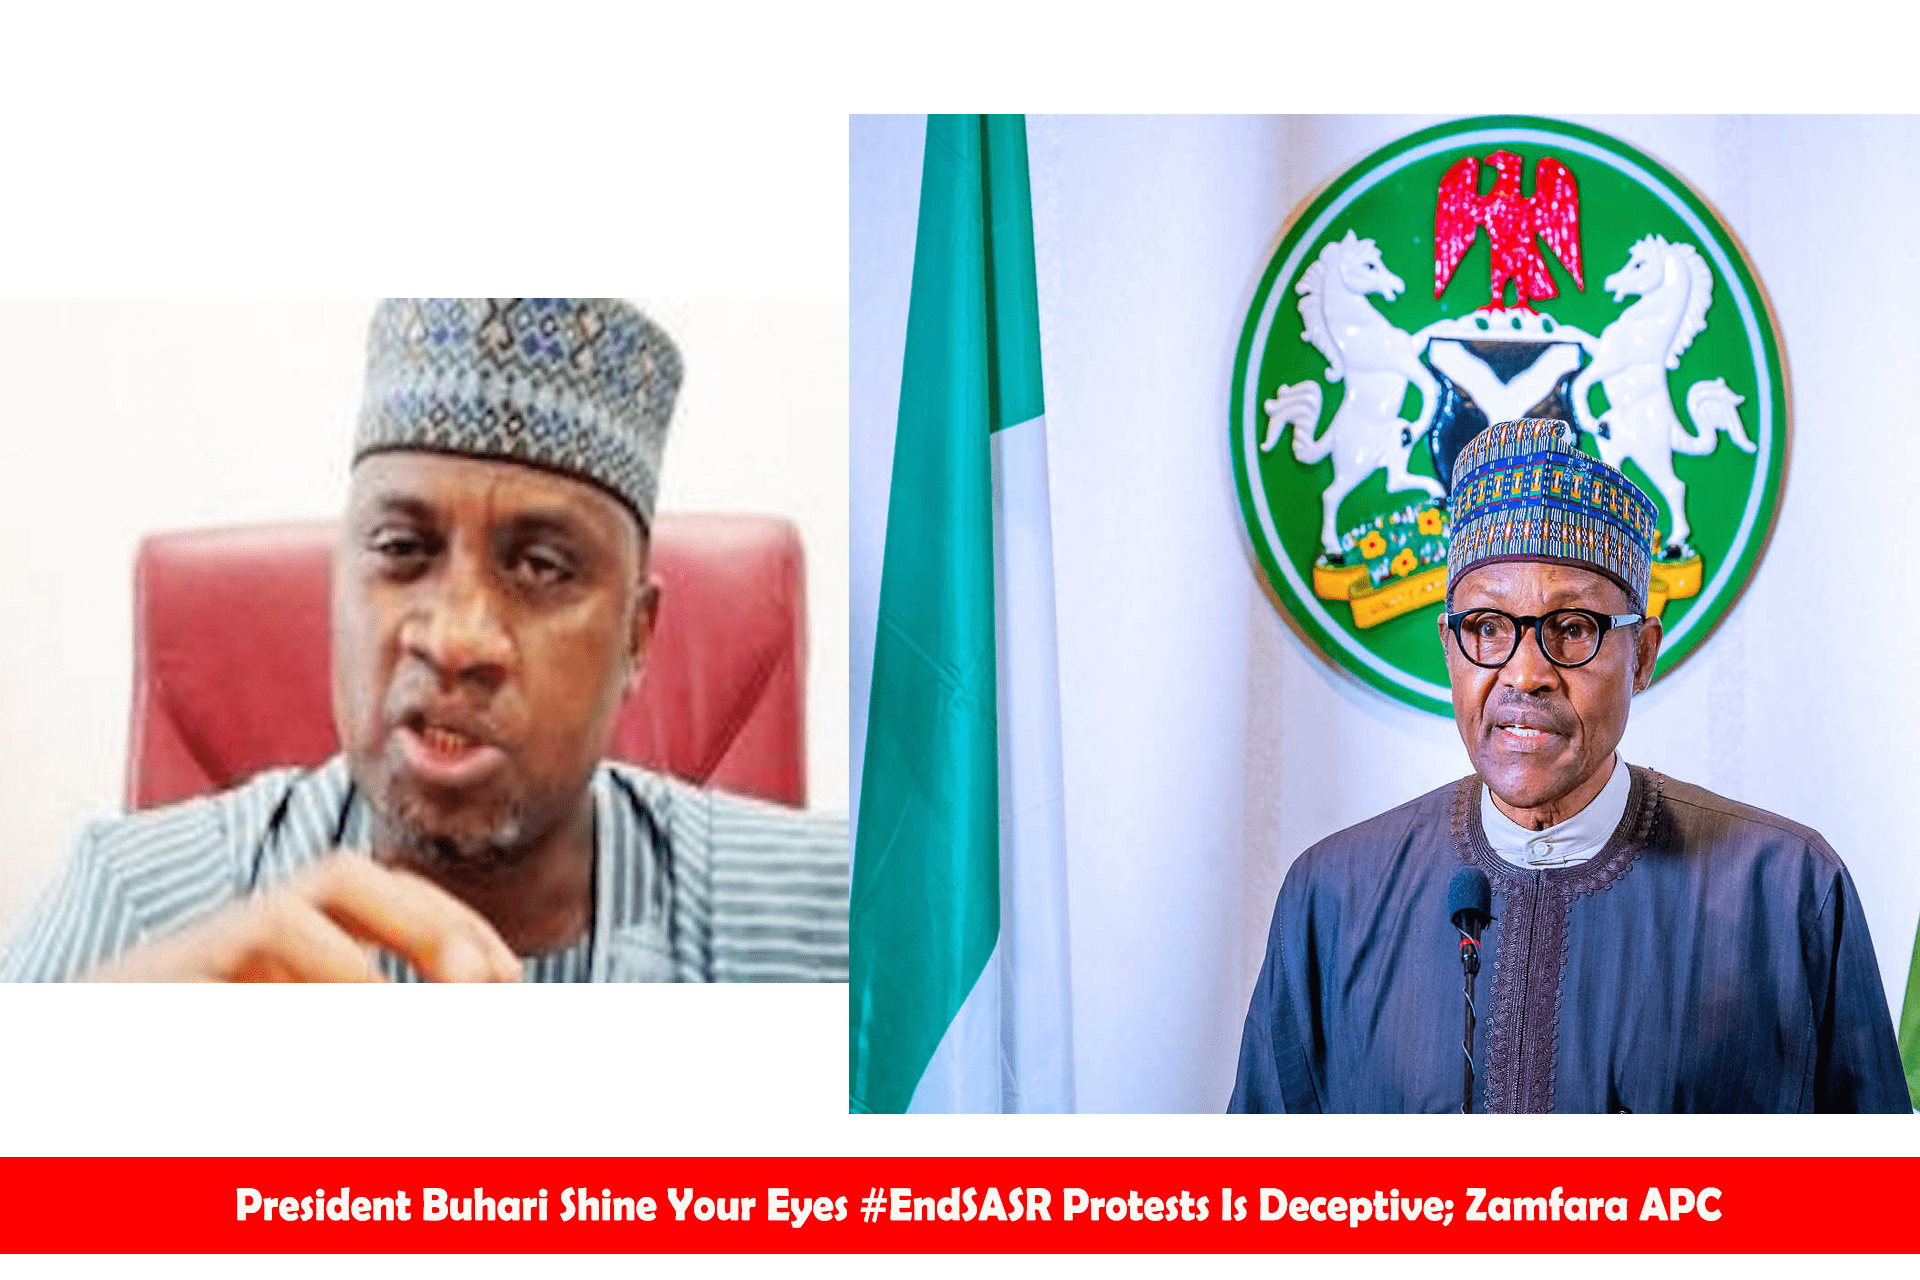 President Buhari Shine Your Eyes #EndSASR Protests Is Deceptive; Zamfara APC